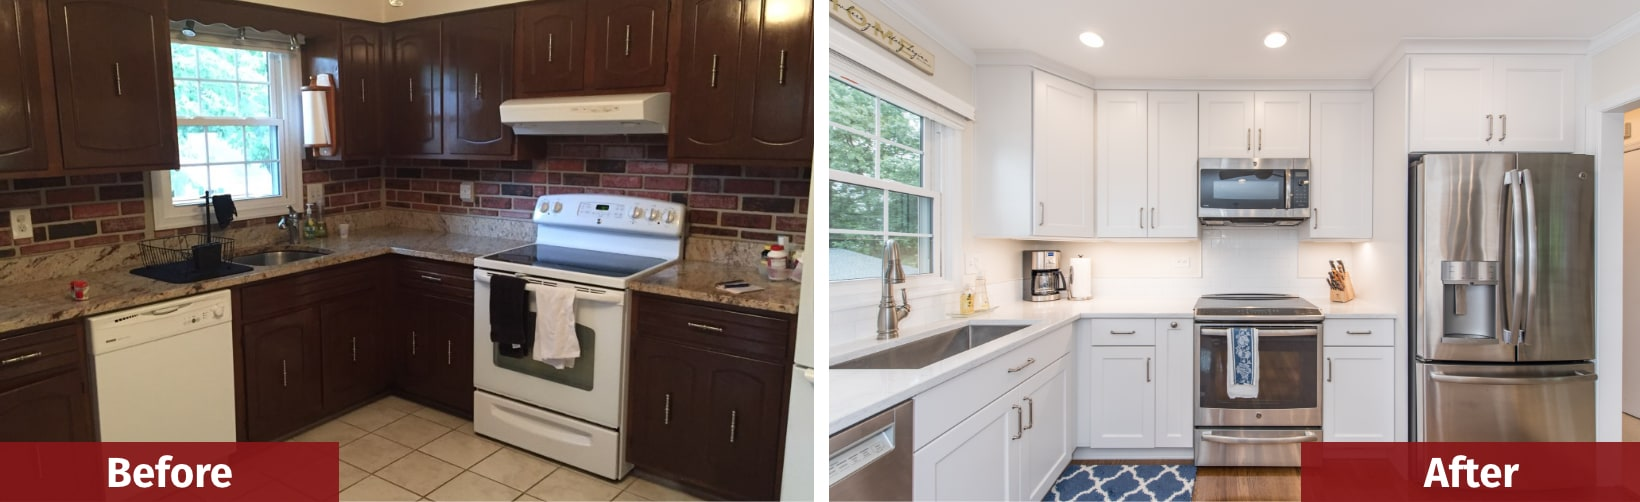 kitchen remodeling before and after